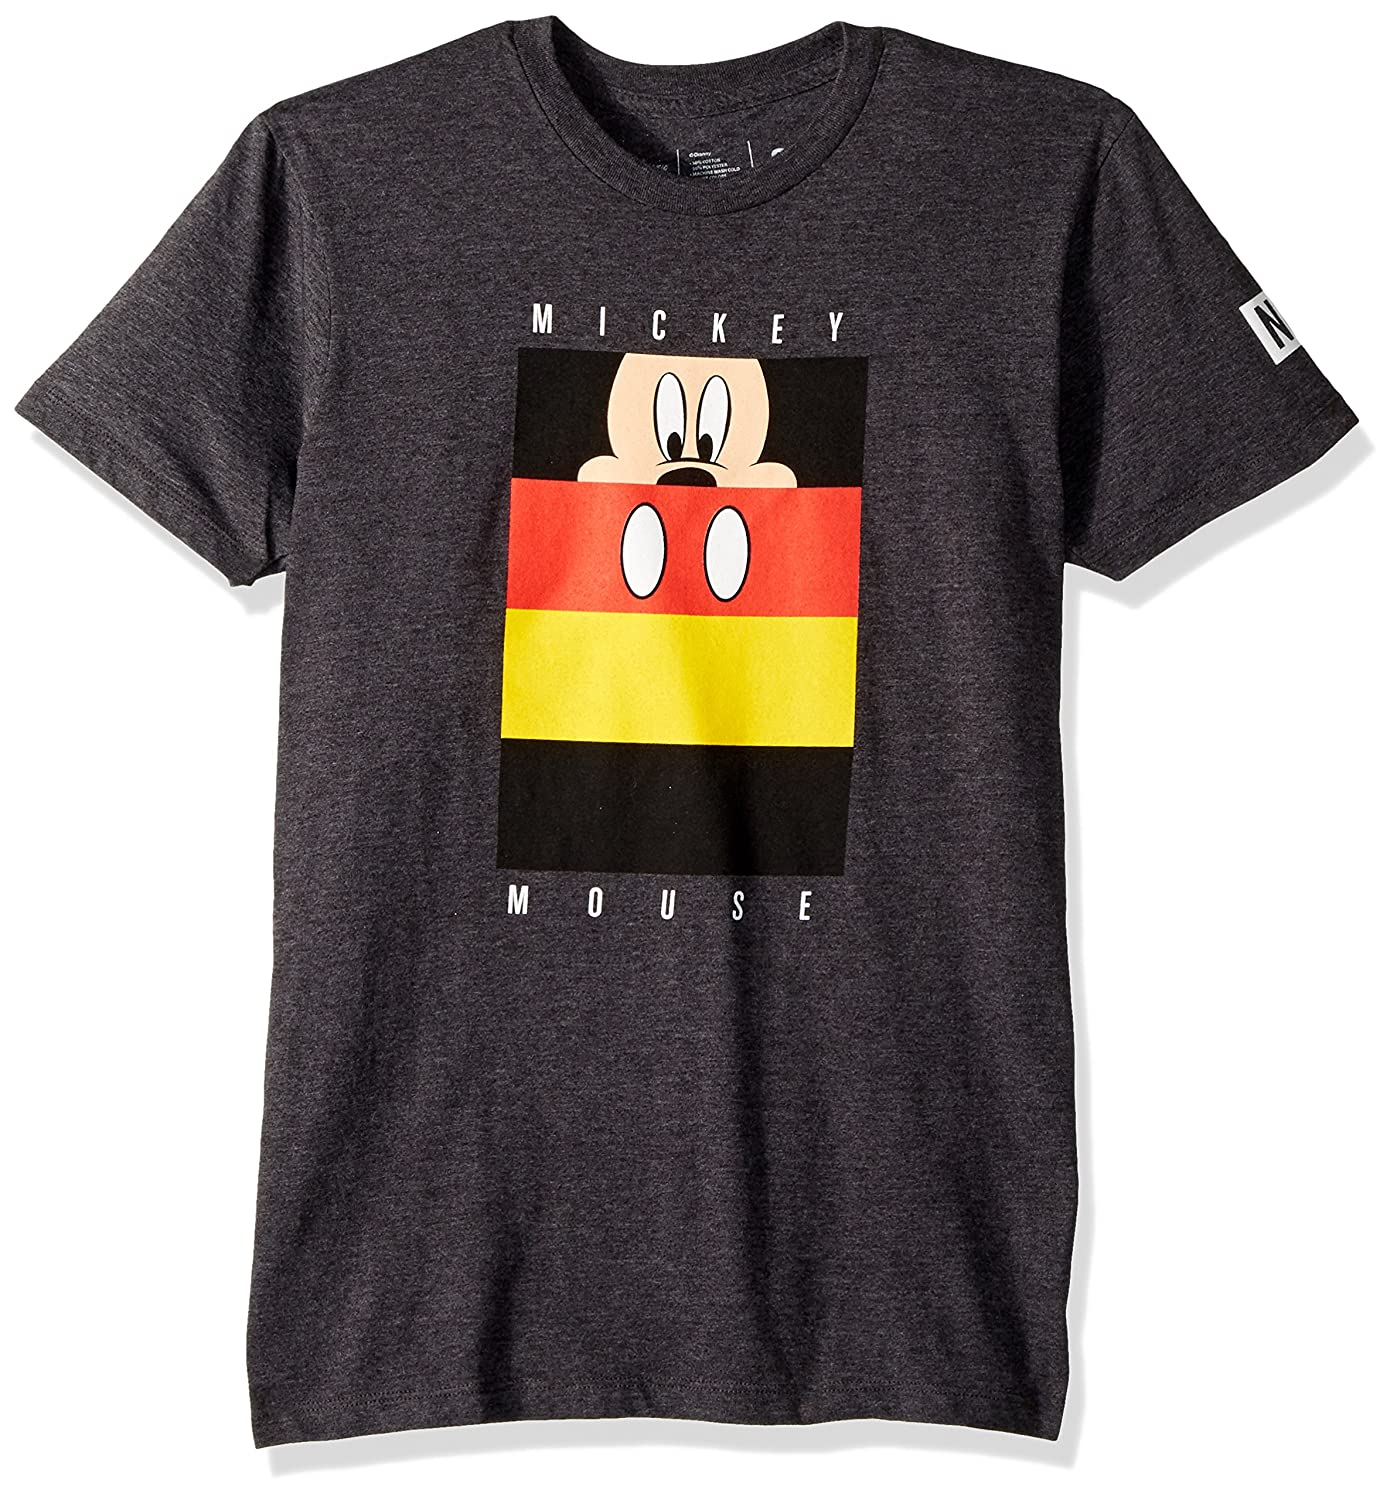 4480996b5b0 Top 10 wholesale Cartoon Tee Shirts - Chinabrands.com